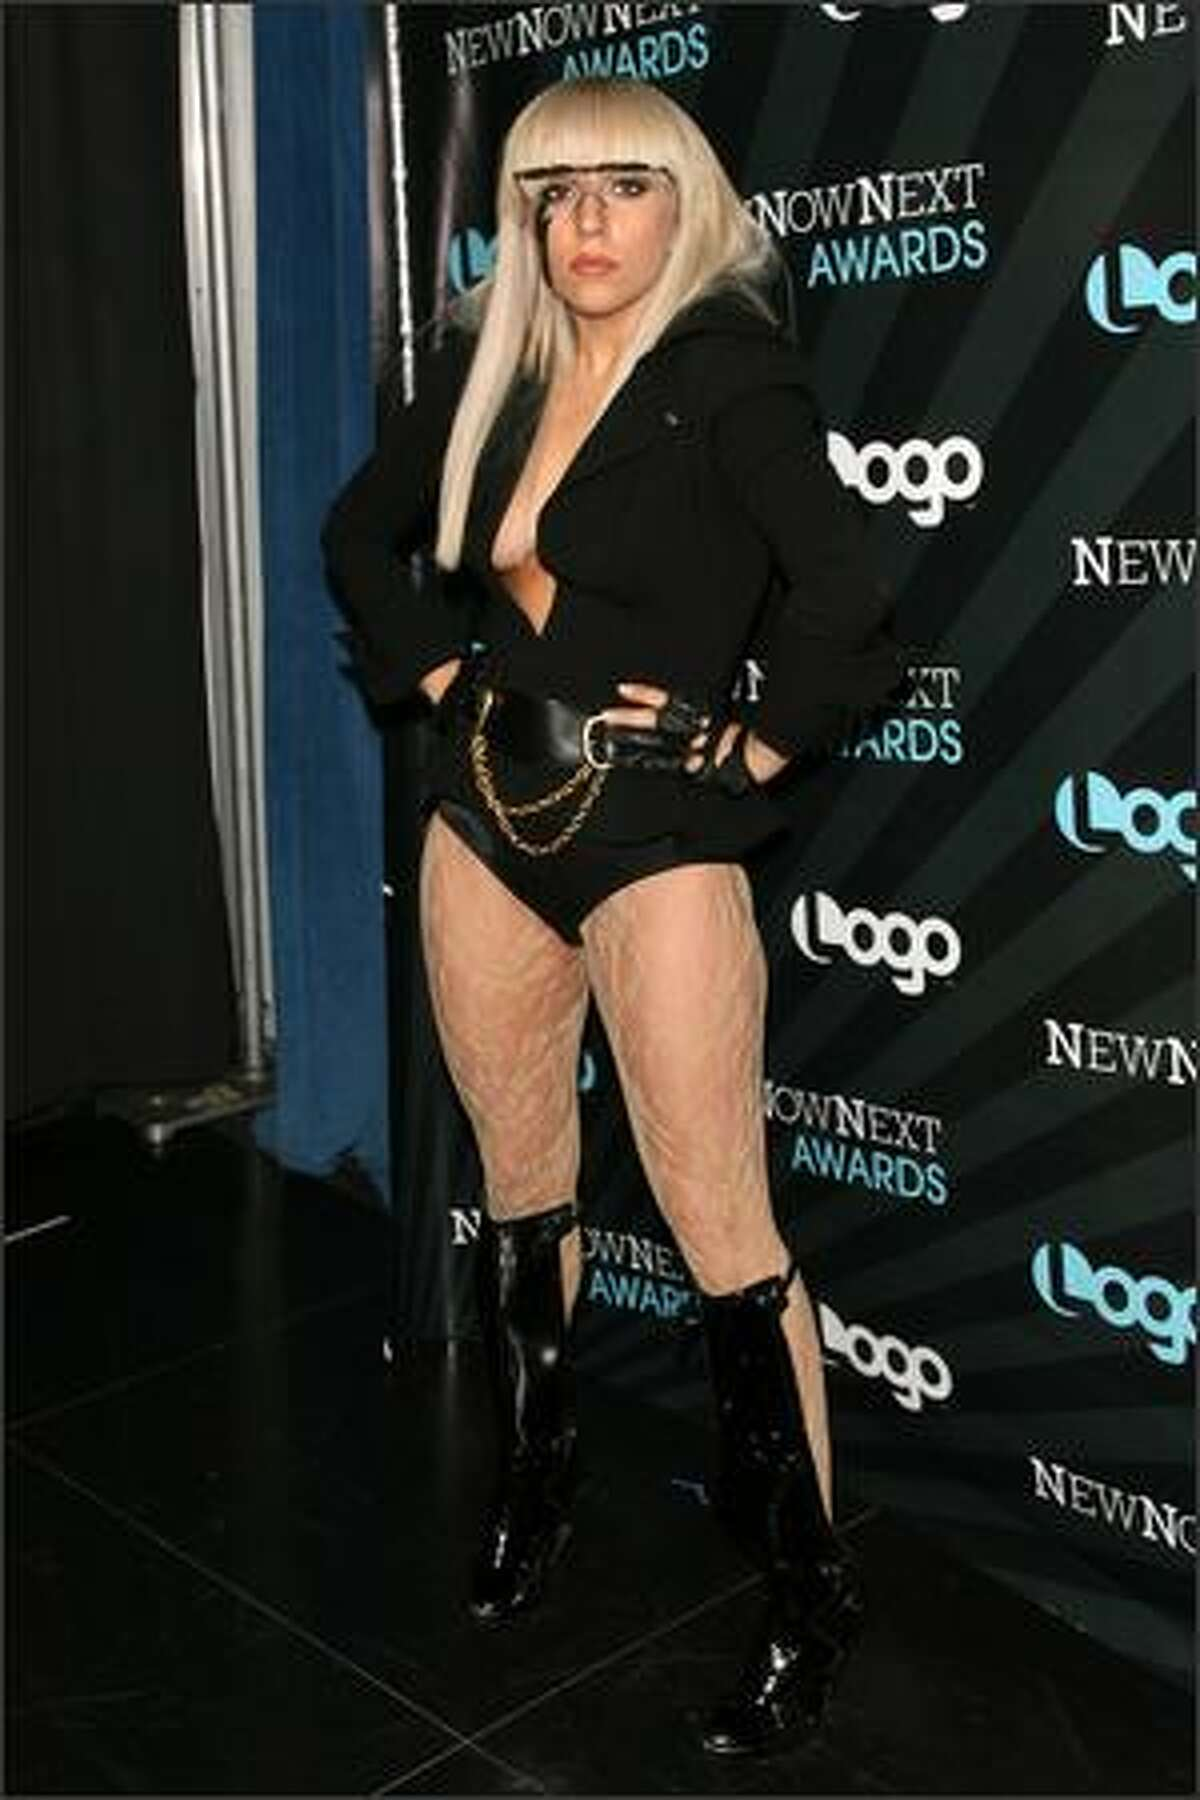 Lady Gaga arrives at the 2008 NewNowNext Awards at the MTV studios on May 19, 2008 in New York City.